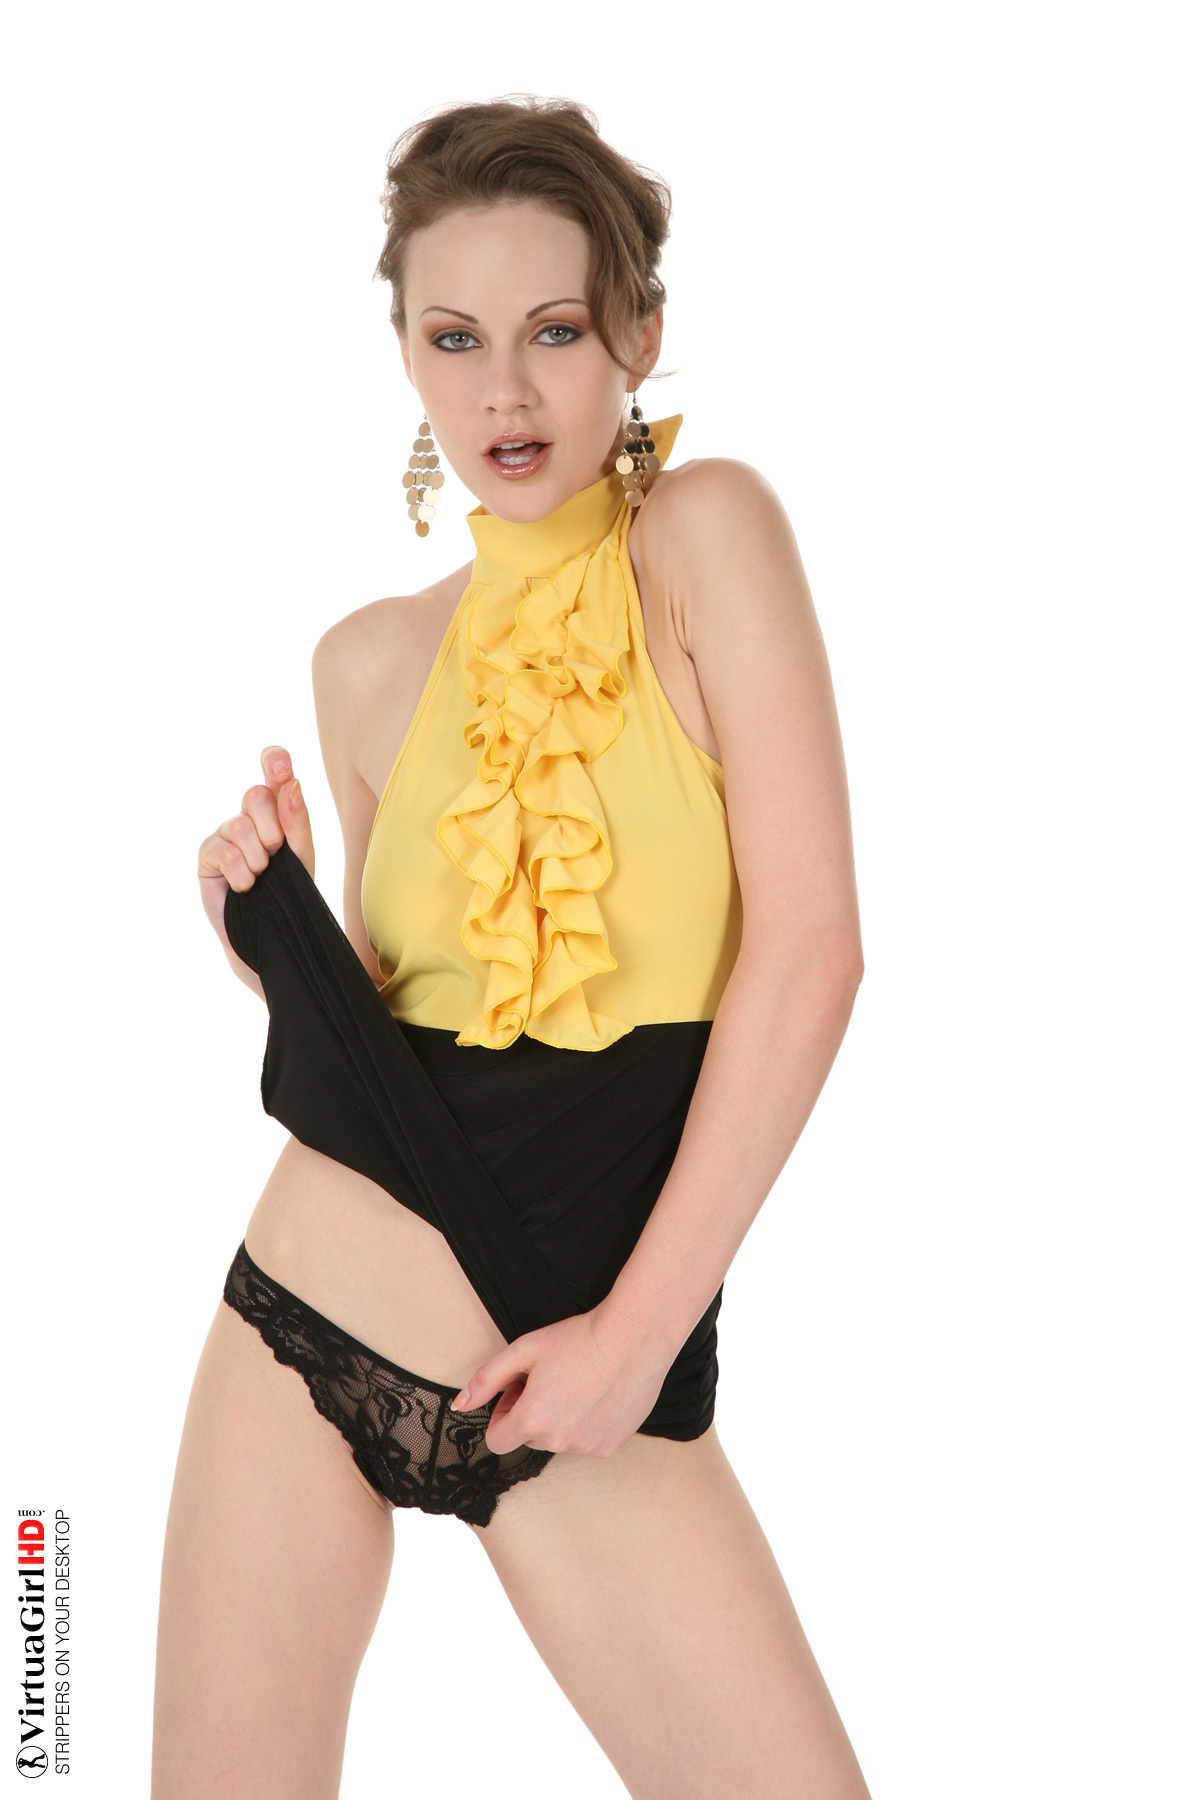 sexy blonde british girl striptease in yellow lingerie